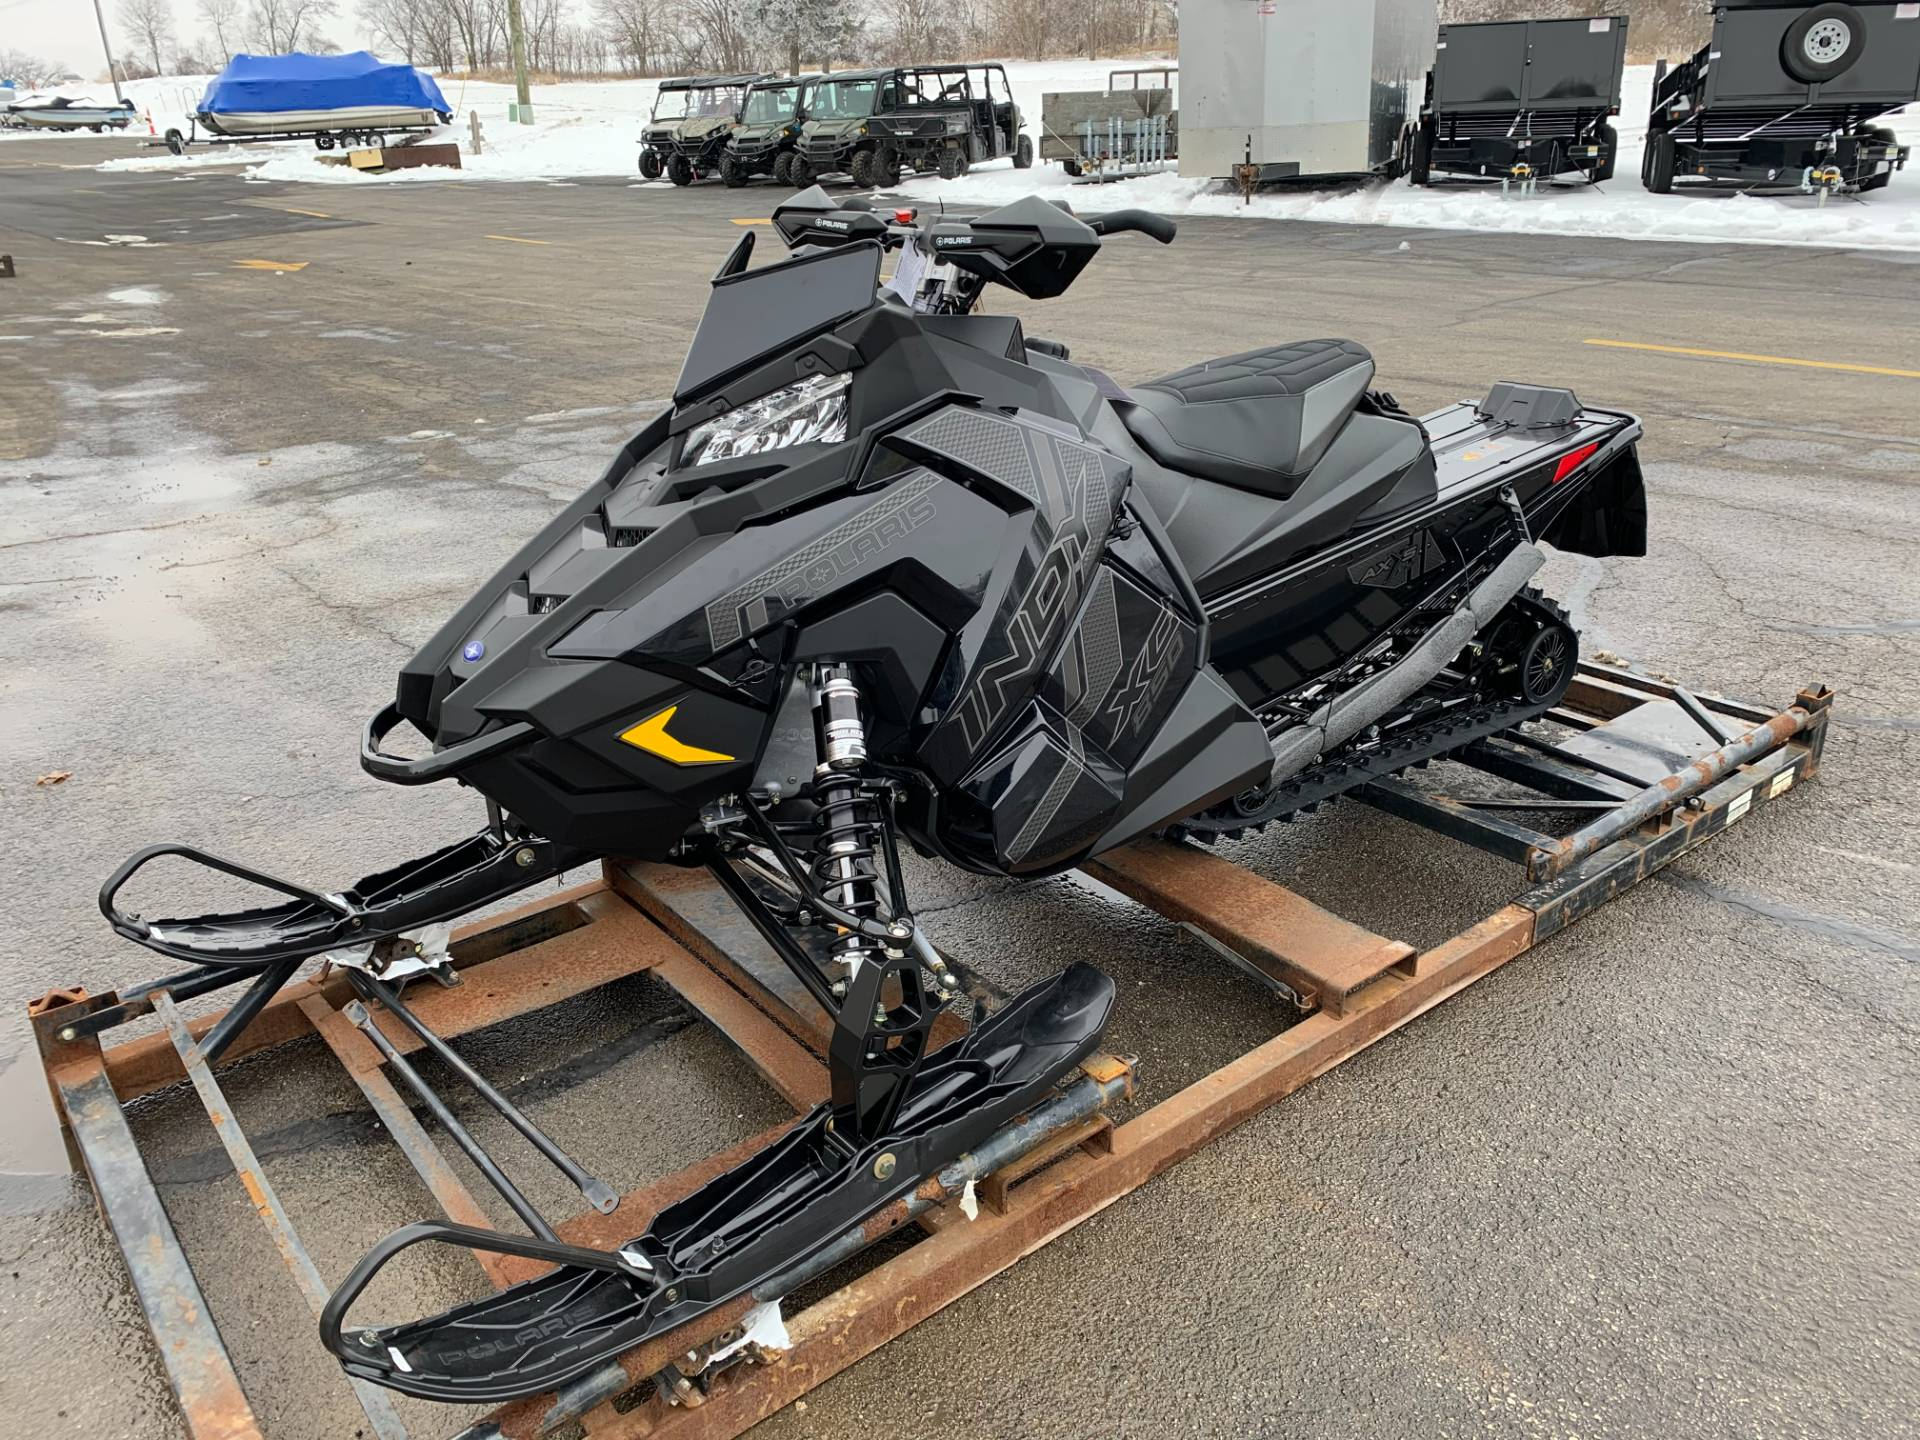 2021 Polaris 850 Indy XC 137 Factory Choice in Belvidere, Illinois - Photo 2